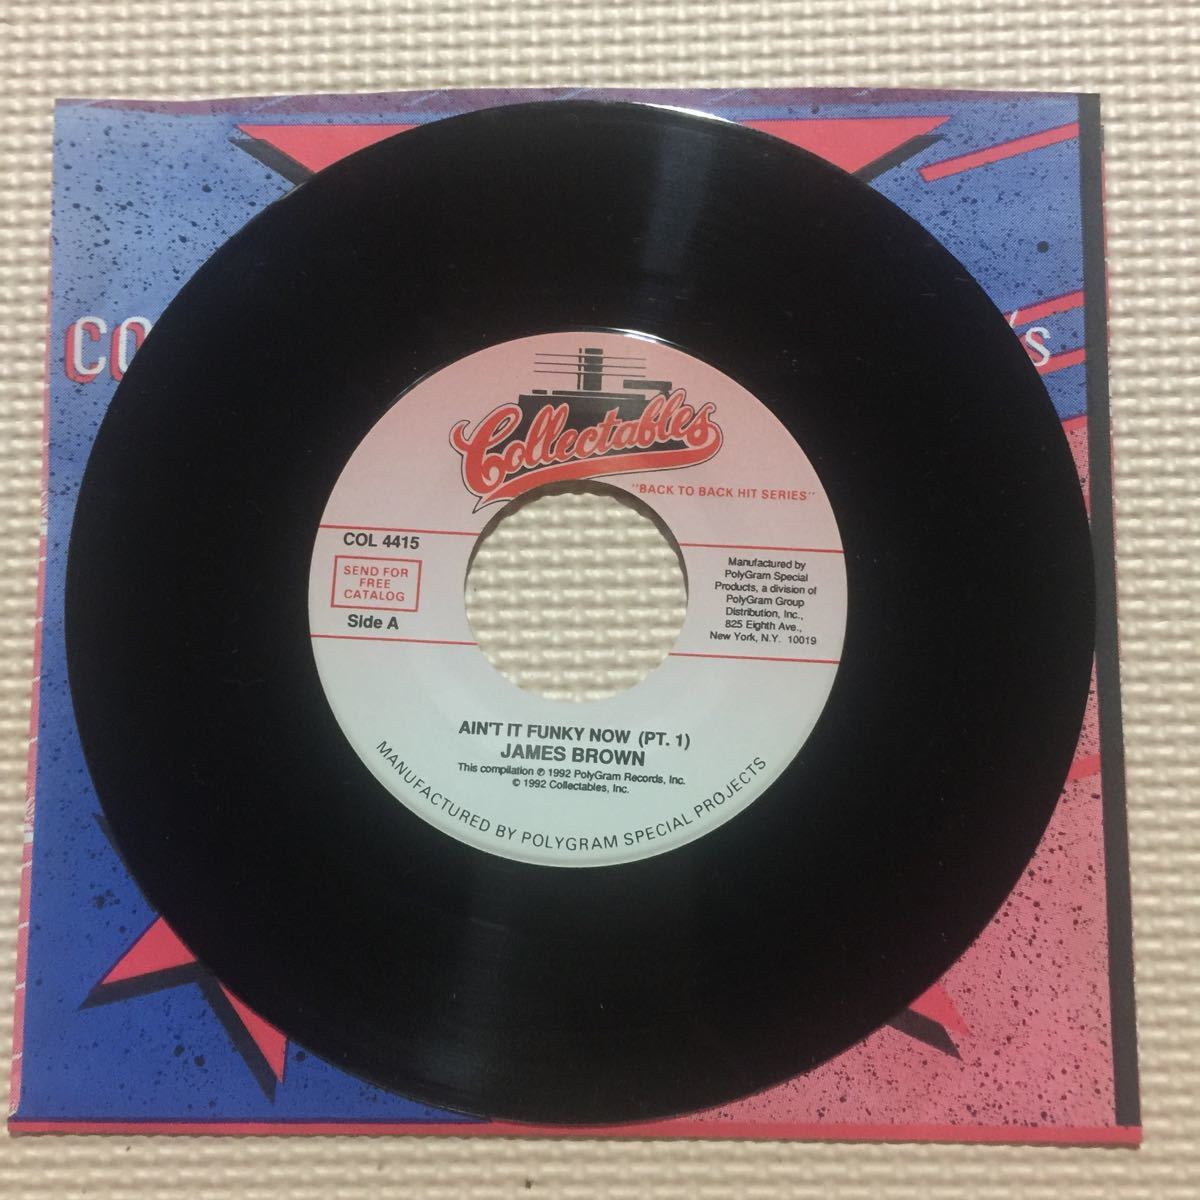 James Brown Ain't It Funky Now USA盤7インチシングルレコード_画像2